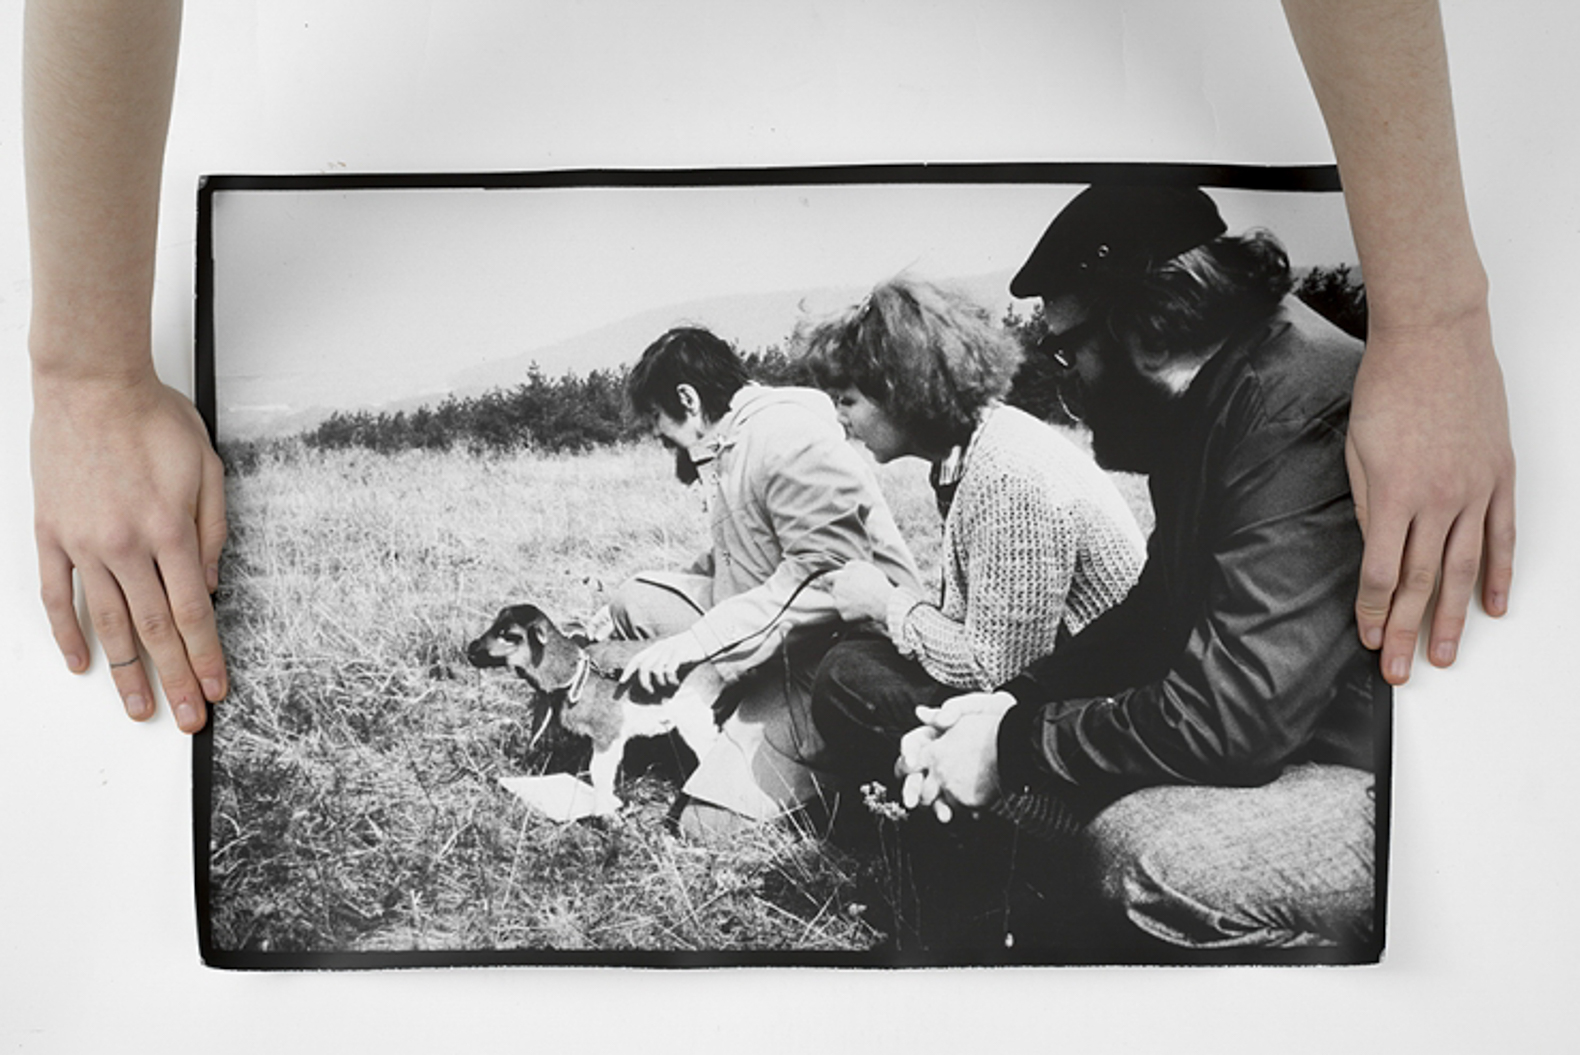 Peter Bartoš and Petra Feriancocá, Grazing a Lamb, 1979/2016 – original photos from the archive of Květa Fulierová